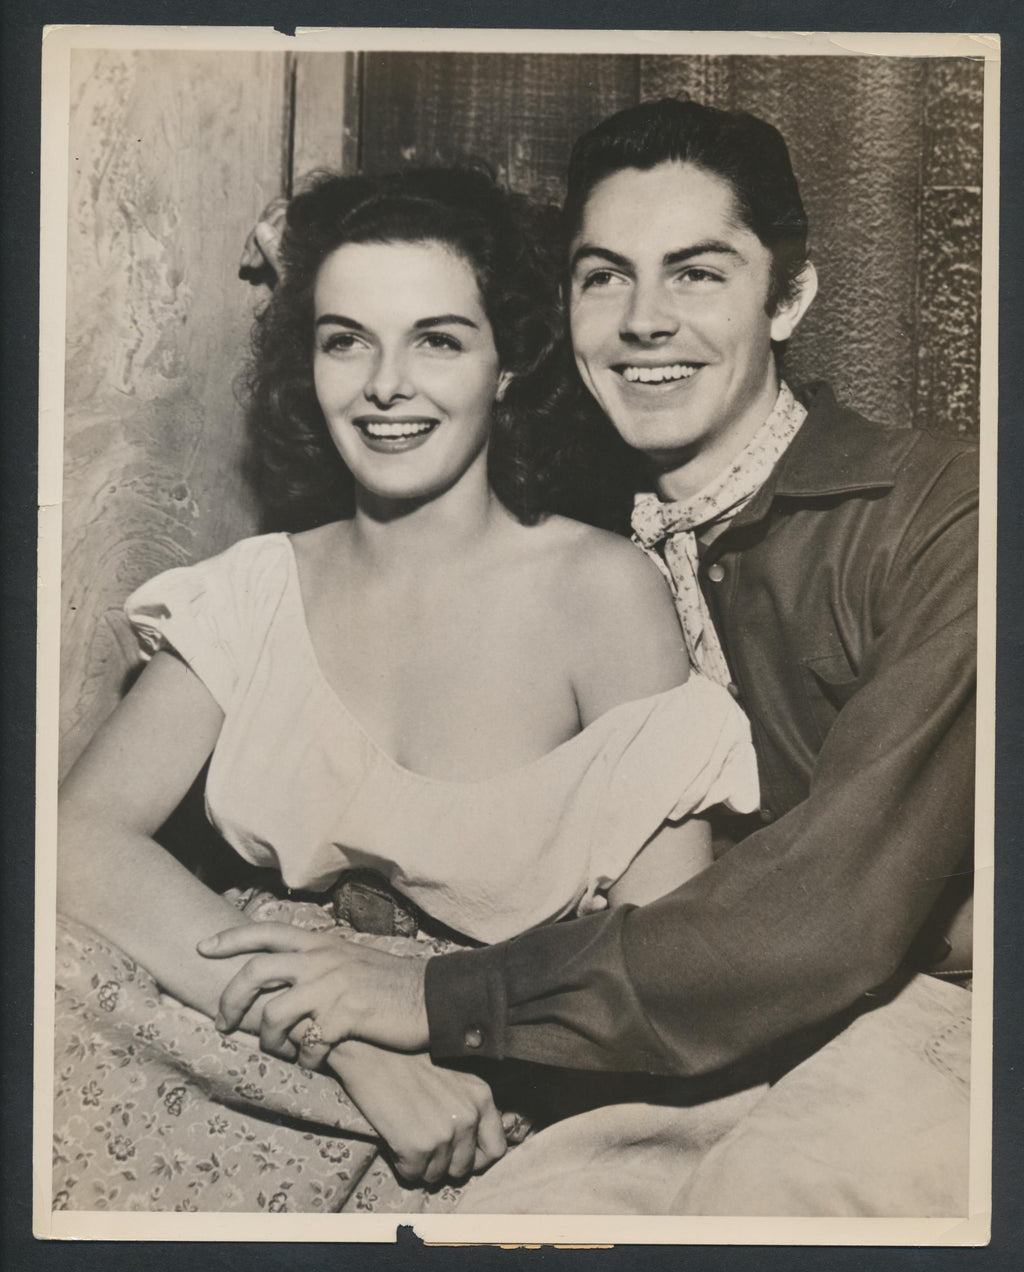 Original Vintage Jane Russell (19) & Jack Beutel Press Photo 1940  The Outlaw